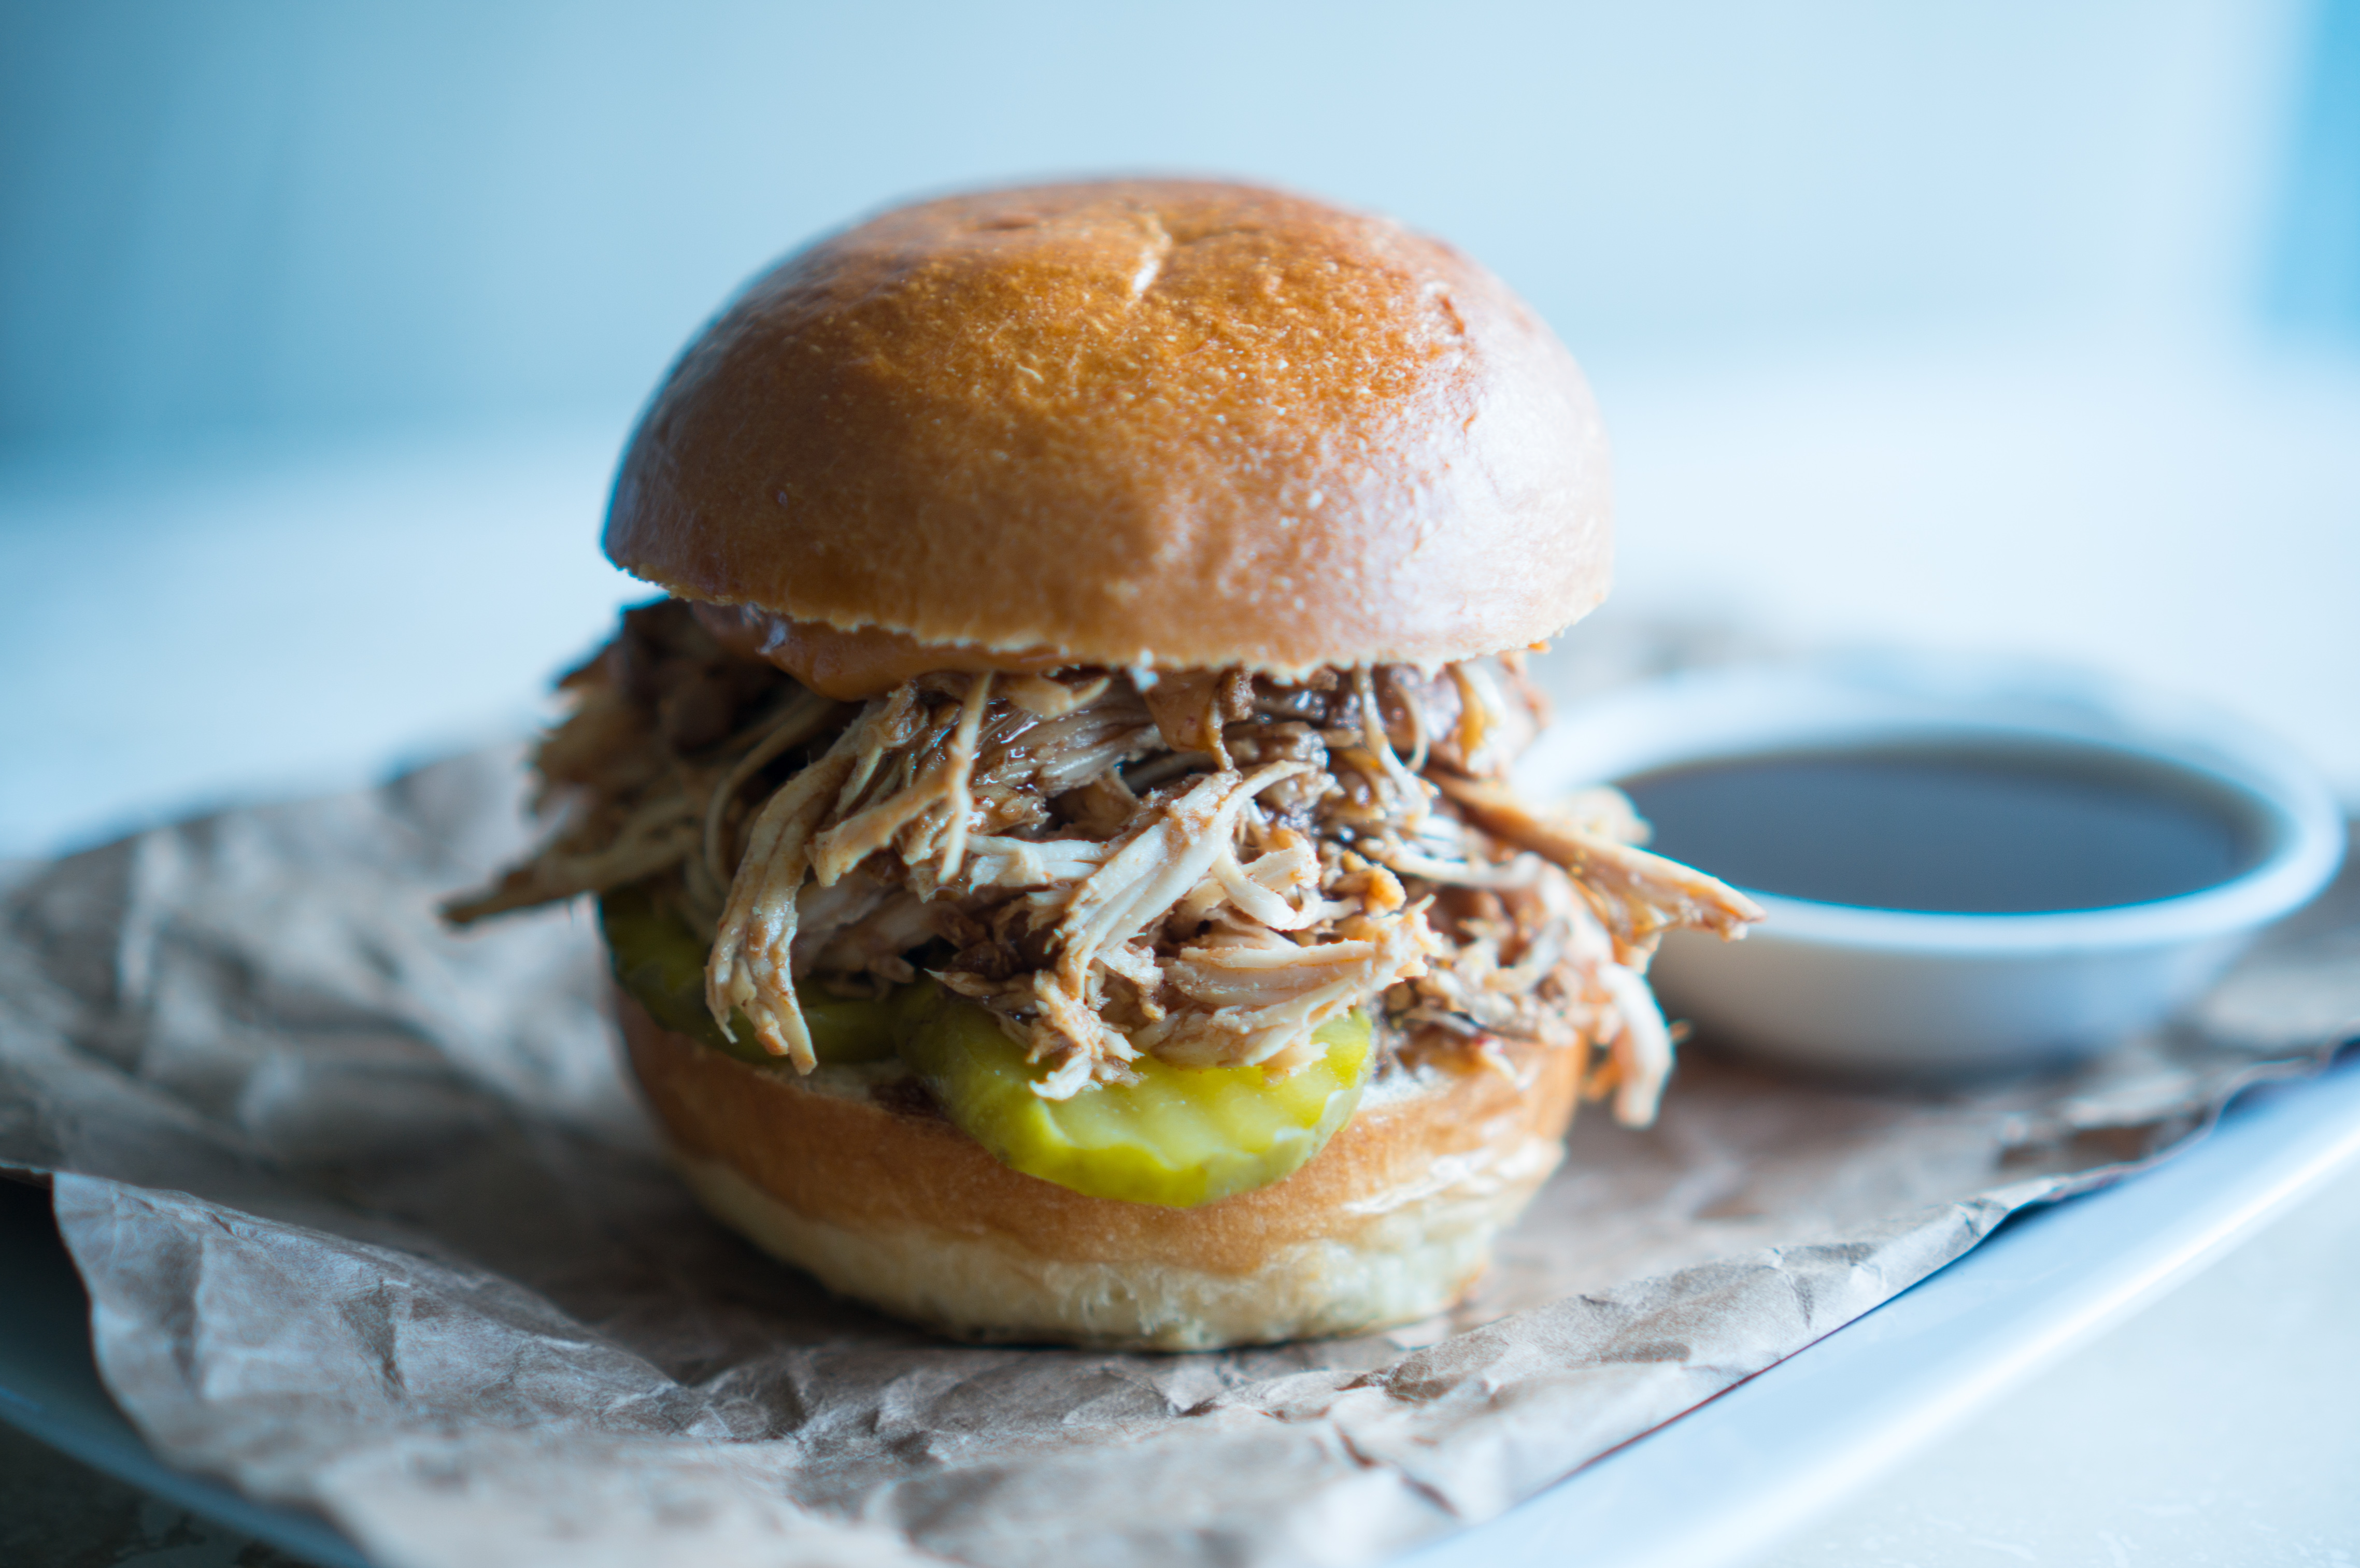 BBQ Pulled Chicken Sliders – Easy Crockpot Shredded Chicken makes this BBQ Pulled Chicken Slider recipe a cinch to pull off for weeknight dinners or weekend gatherings! Lean, protein-packed chicken + sweet BBQ sauce + smokey chipotle mayo + crunchy pickles all loaded up on a baby brioche bun. We love how easy these tasty little sliders are to assemble! They are a total life-saver for those parties where you have LOTS of mouths to feed but don't want to get stuck in the kitchen all night! ♥ | freeyourfork.com